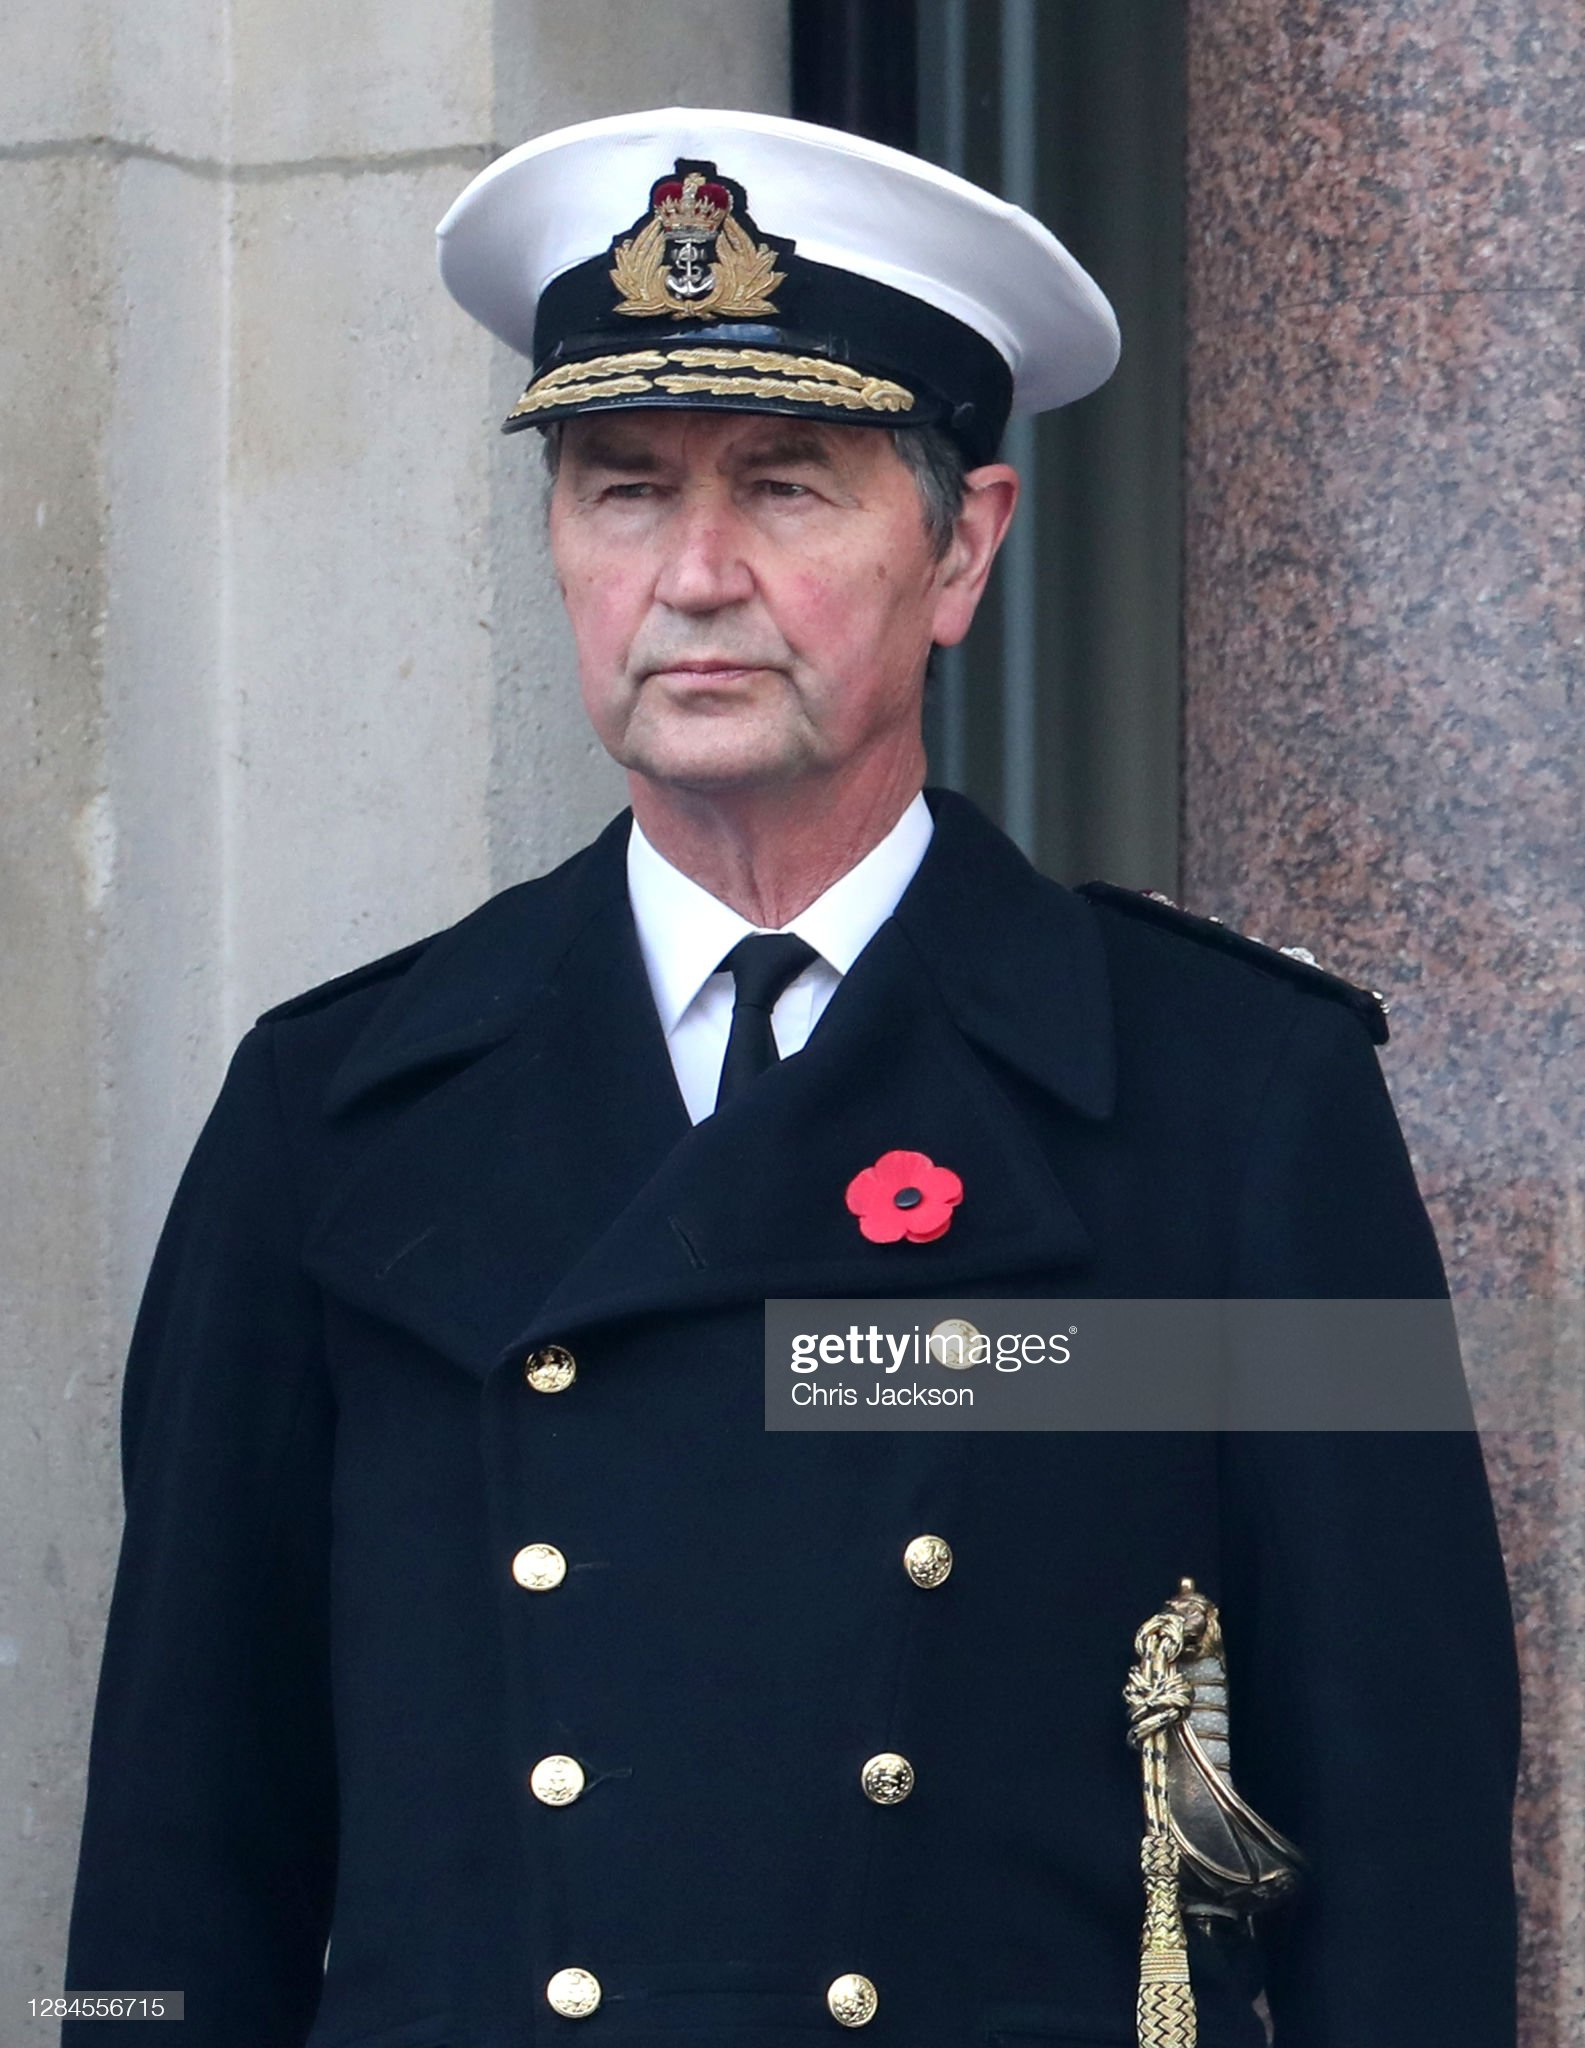 https://media.gettyimages.com/photos/navy-officer-timothy-laurence-during-the-national-service-of-at-the-picture-id1284556715?s=2048x2048